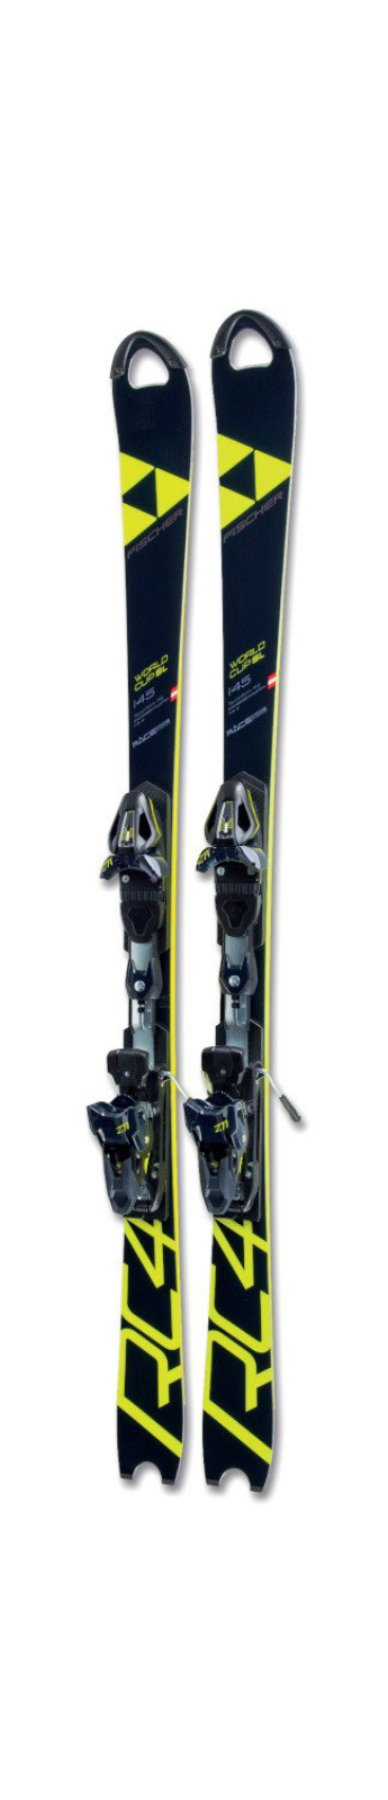 Fischer Junior Slalom Skis